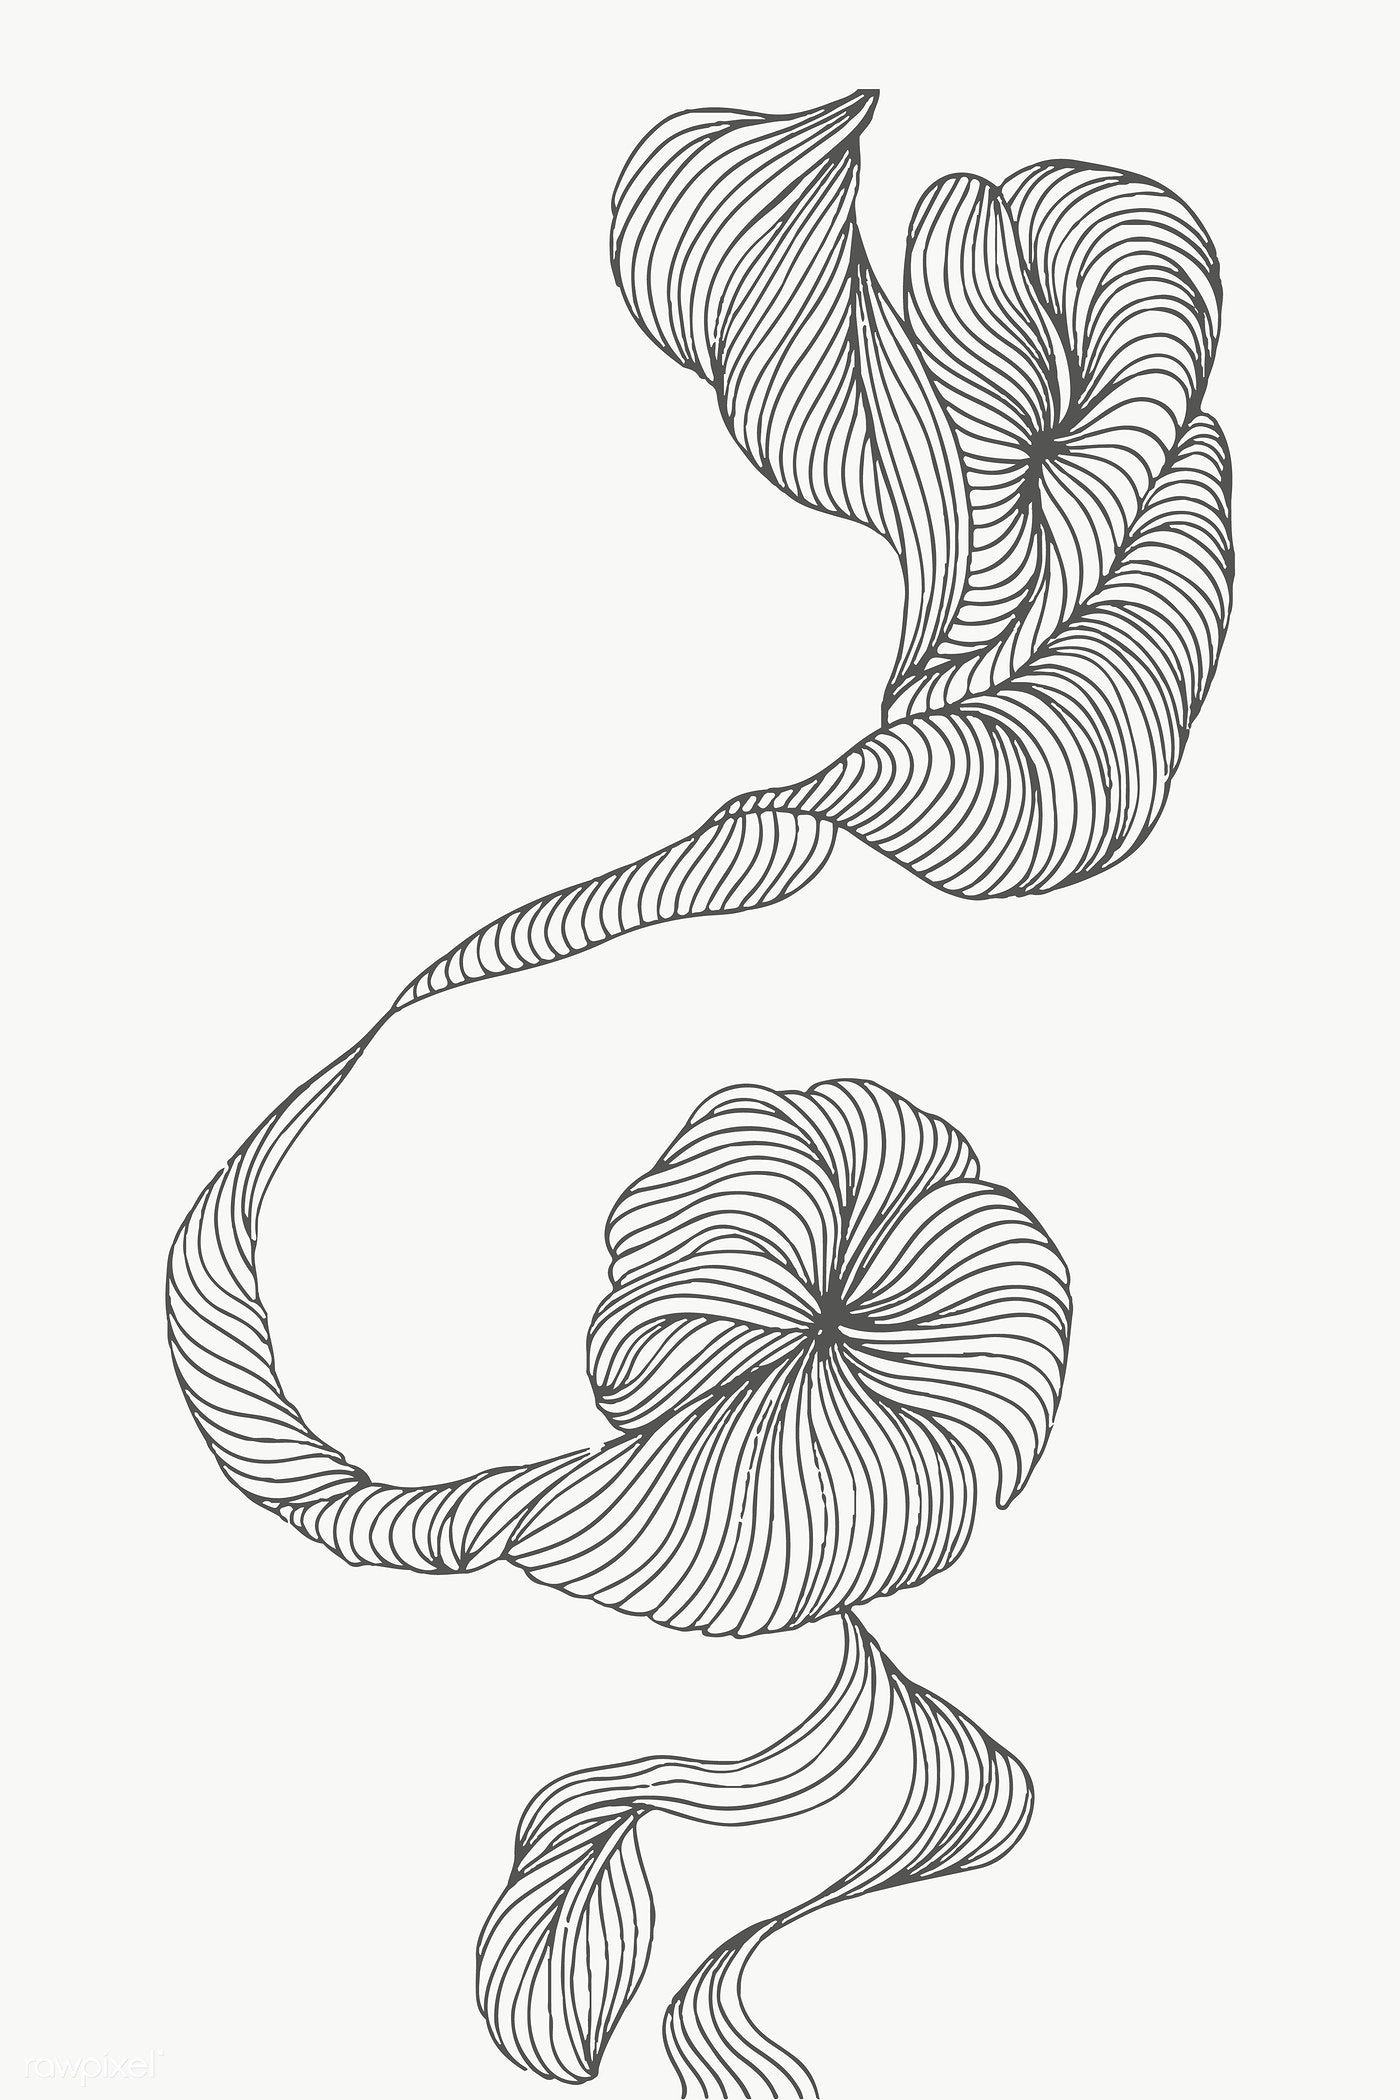 Swirly Abstract Art Design Transparent Png Premium Image By Rawpixel Com Nunny Linear Art Abstract Art Collection Abstract